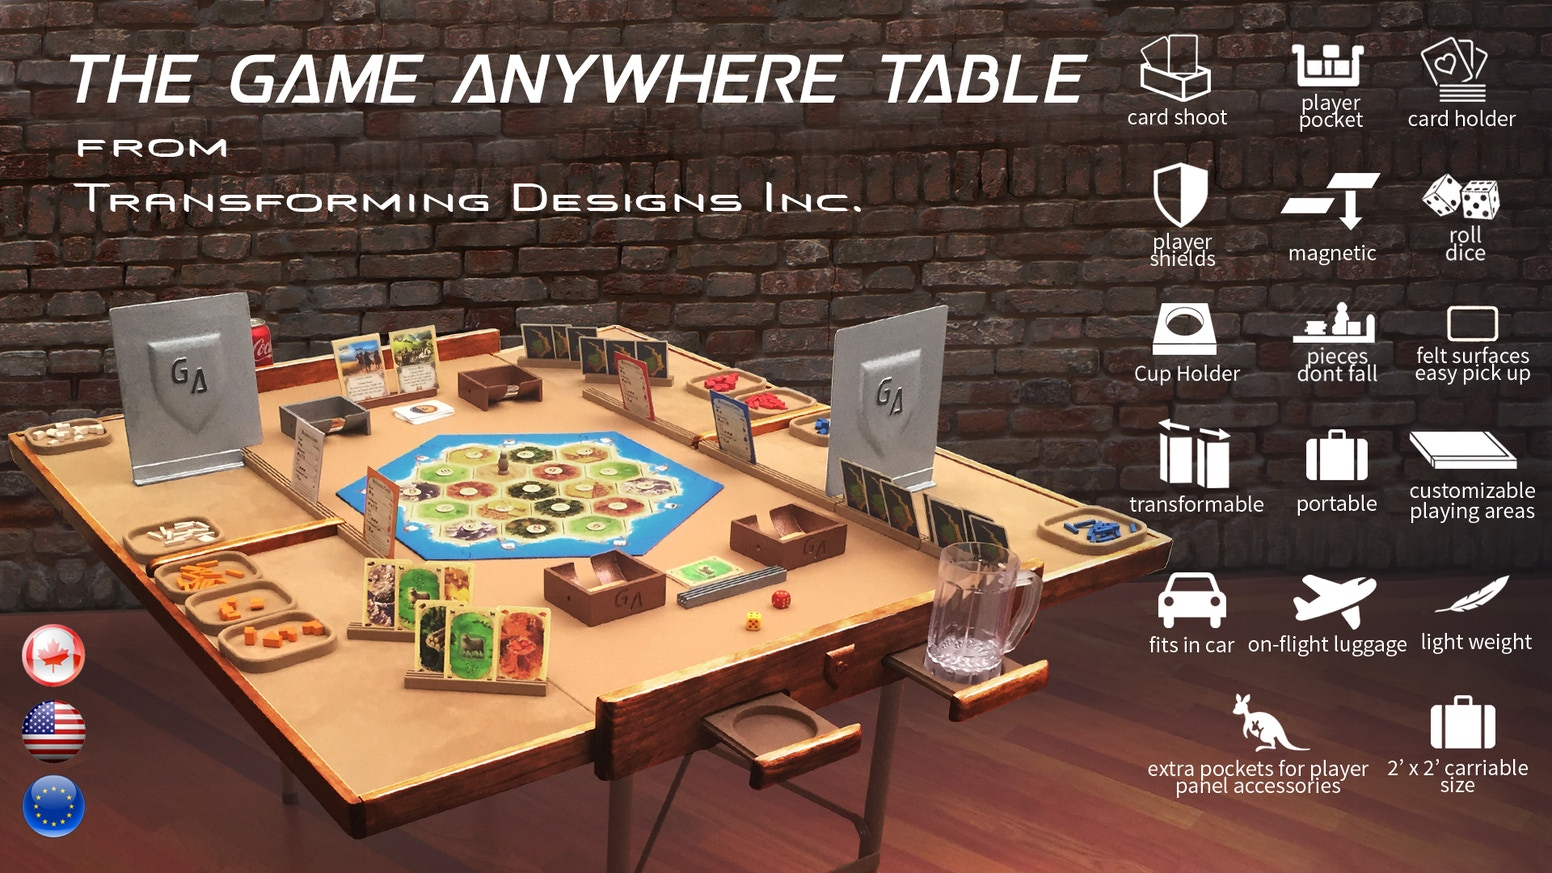 A customizable gaming table, for the best gaming experience, portable, storable and lightweight, that can be taken anywhere